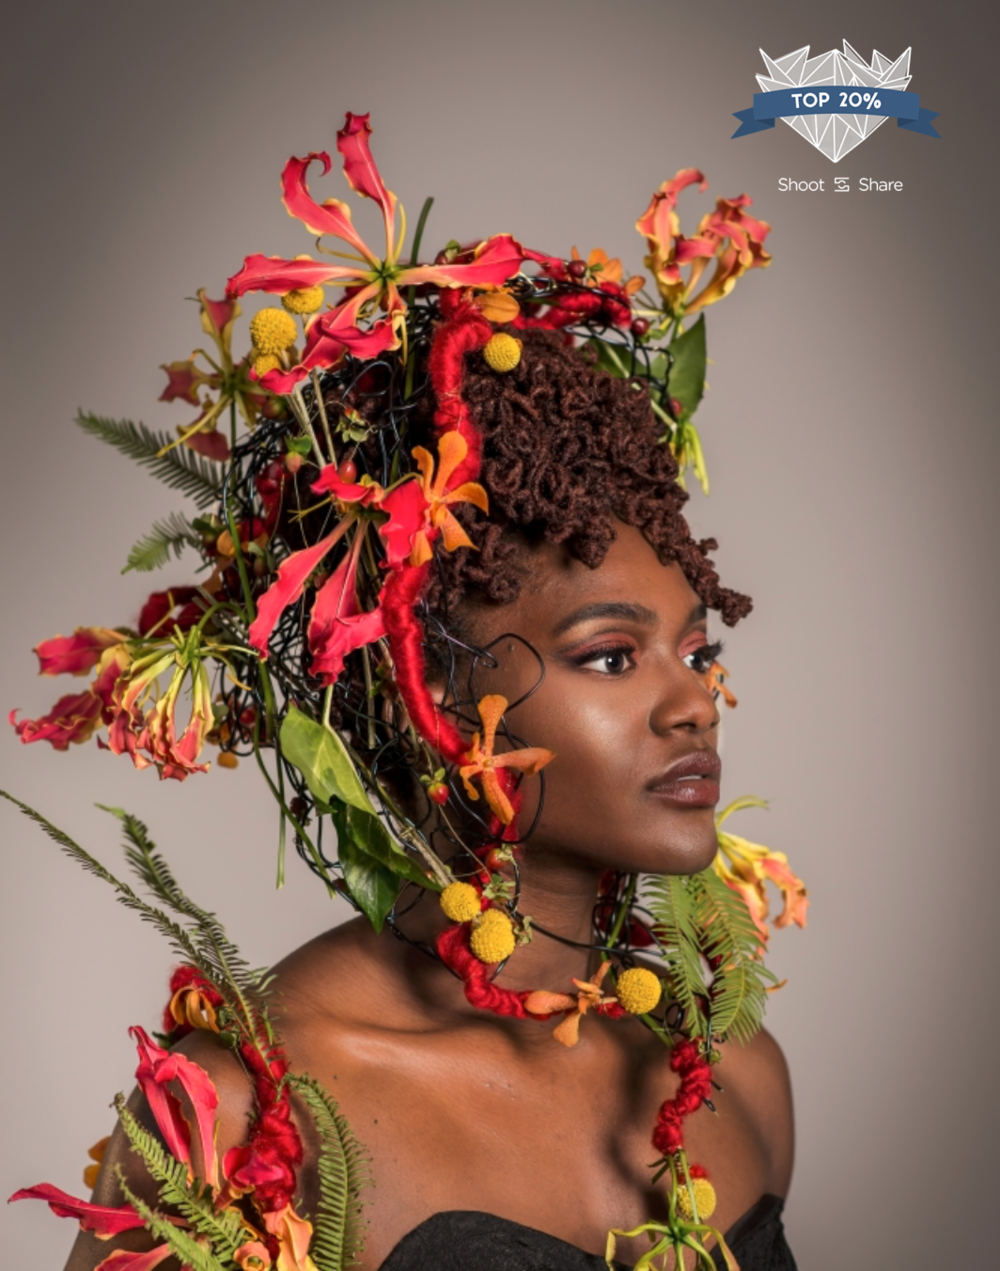 Psalms took #2,171 out of 11,101 images entered in the Styled Portrait/Fashion category.